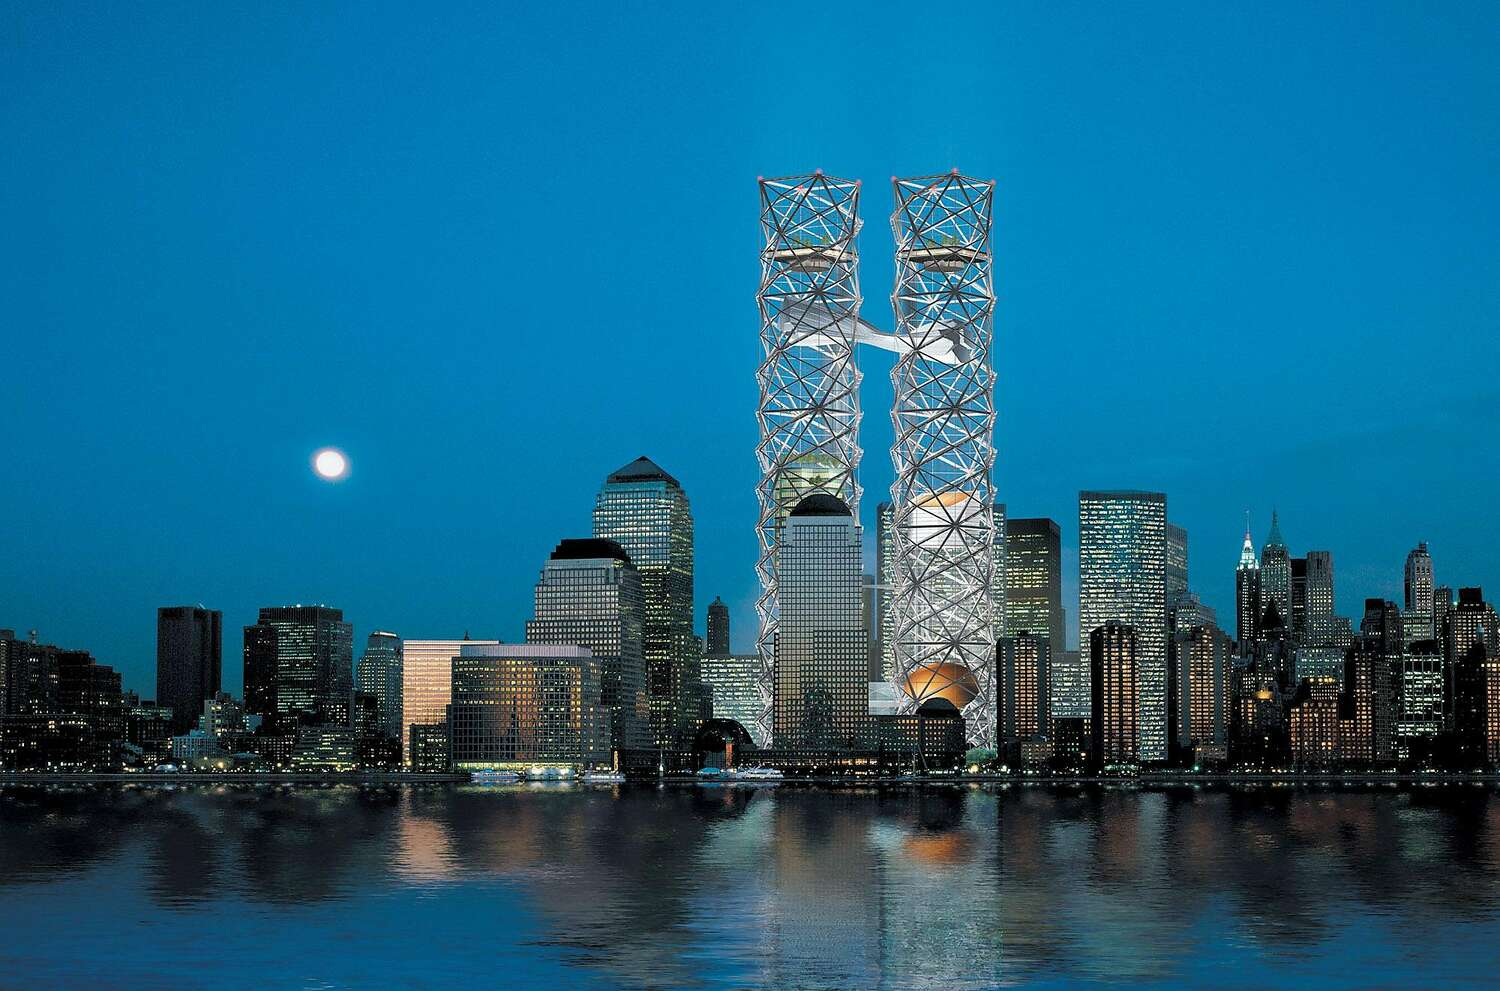 One of the proposed designs for the World Trade Center by Think